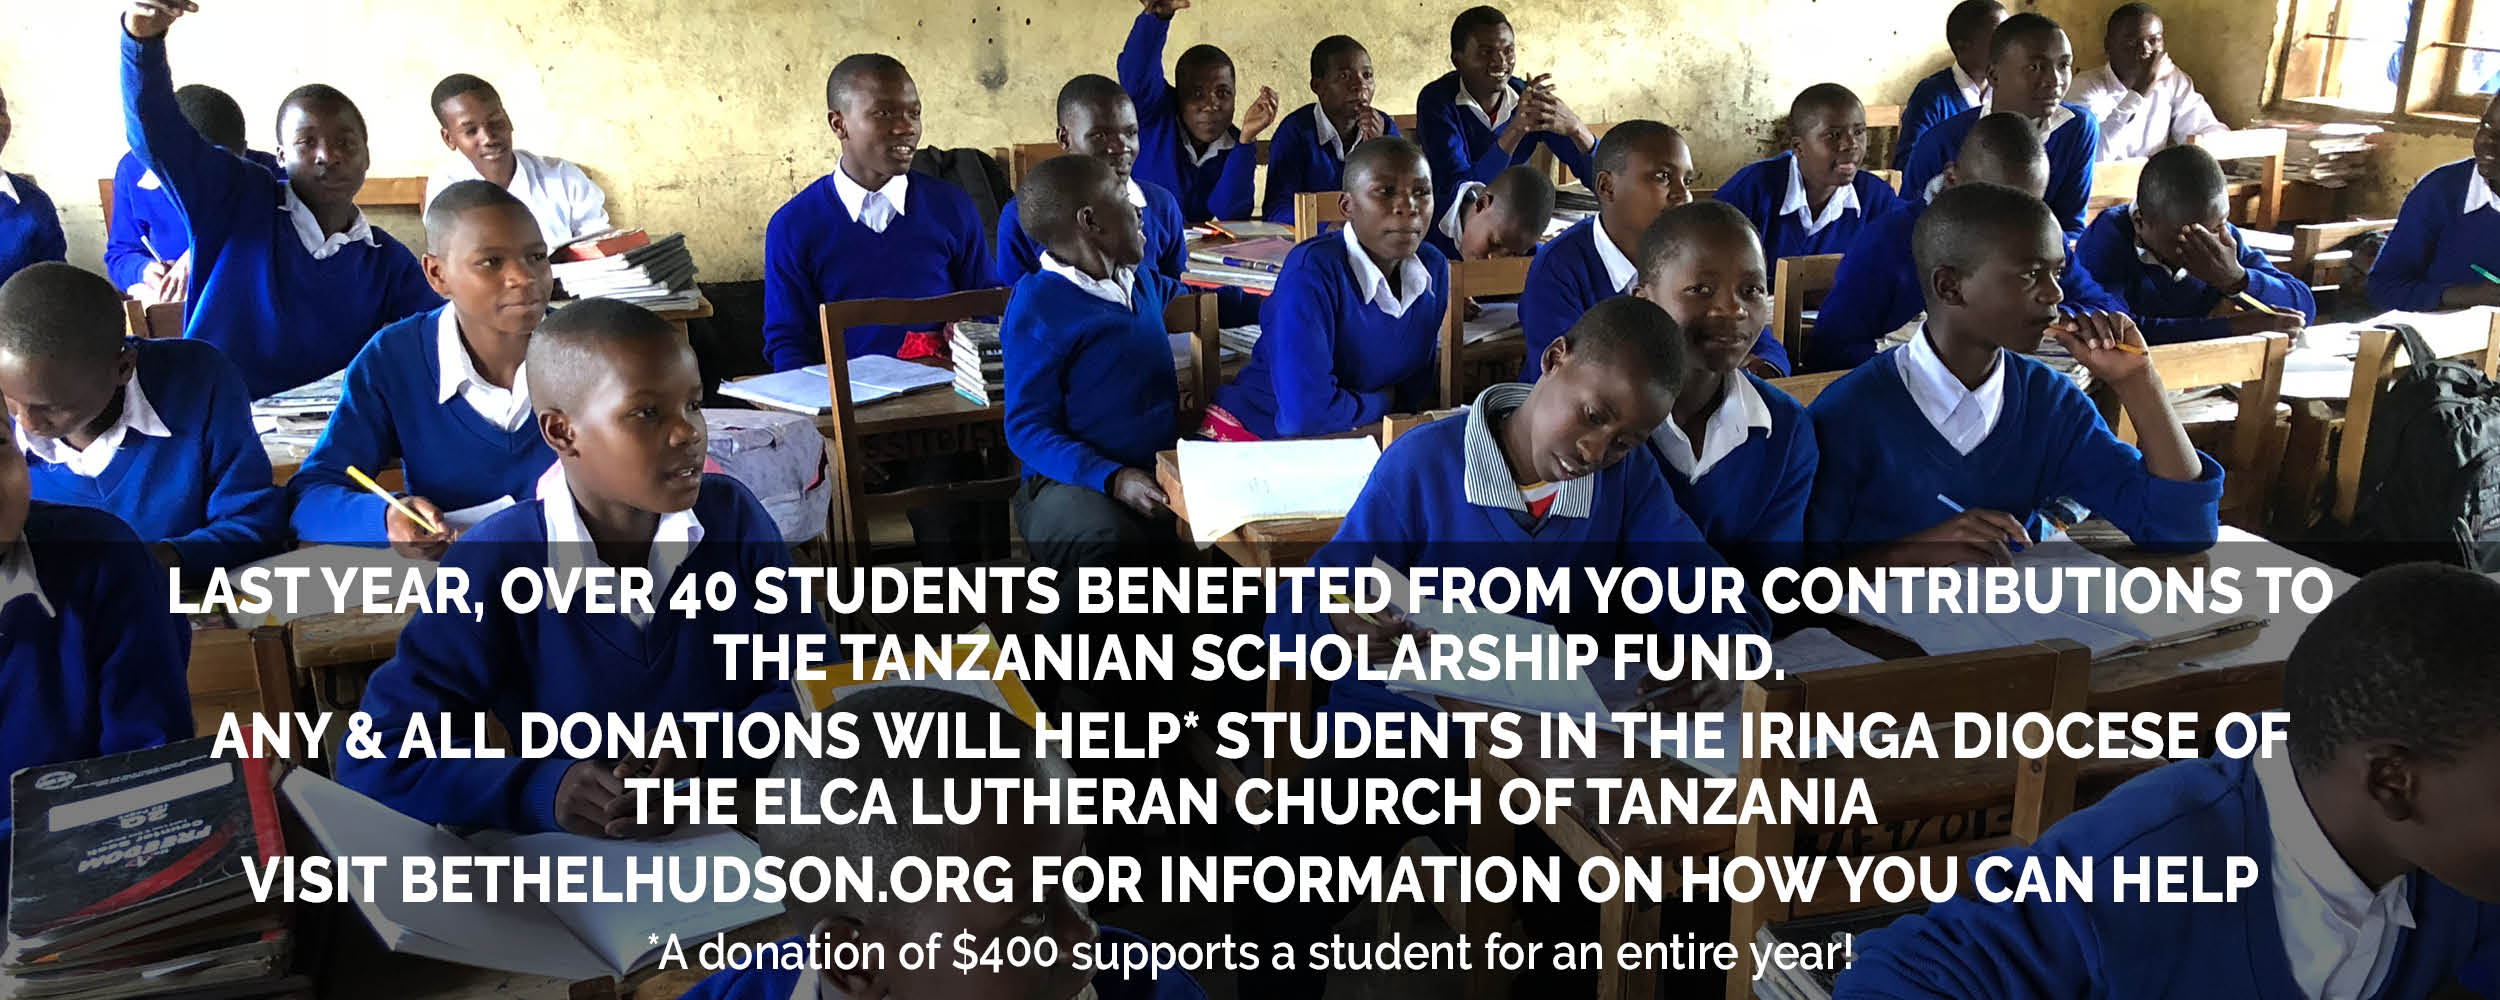 Tanzanian Scholarship Fund Collection Going on now